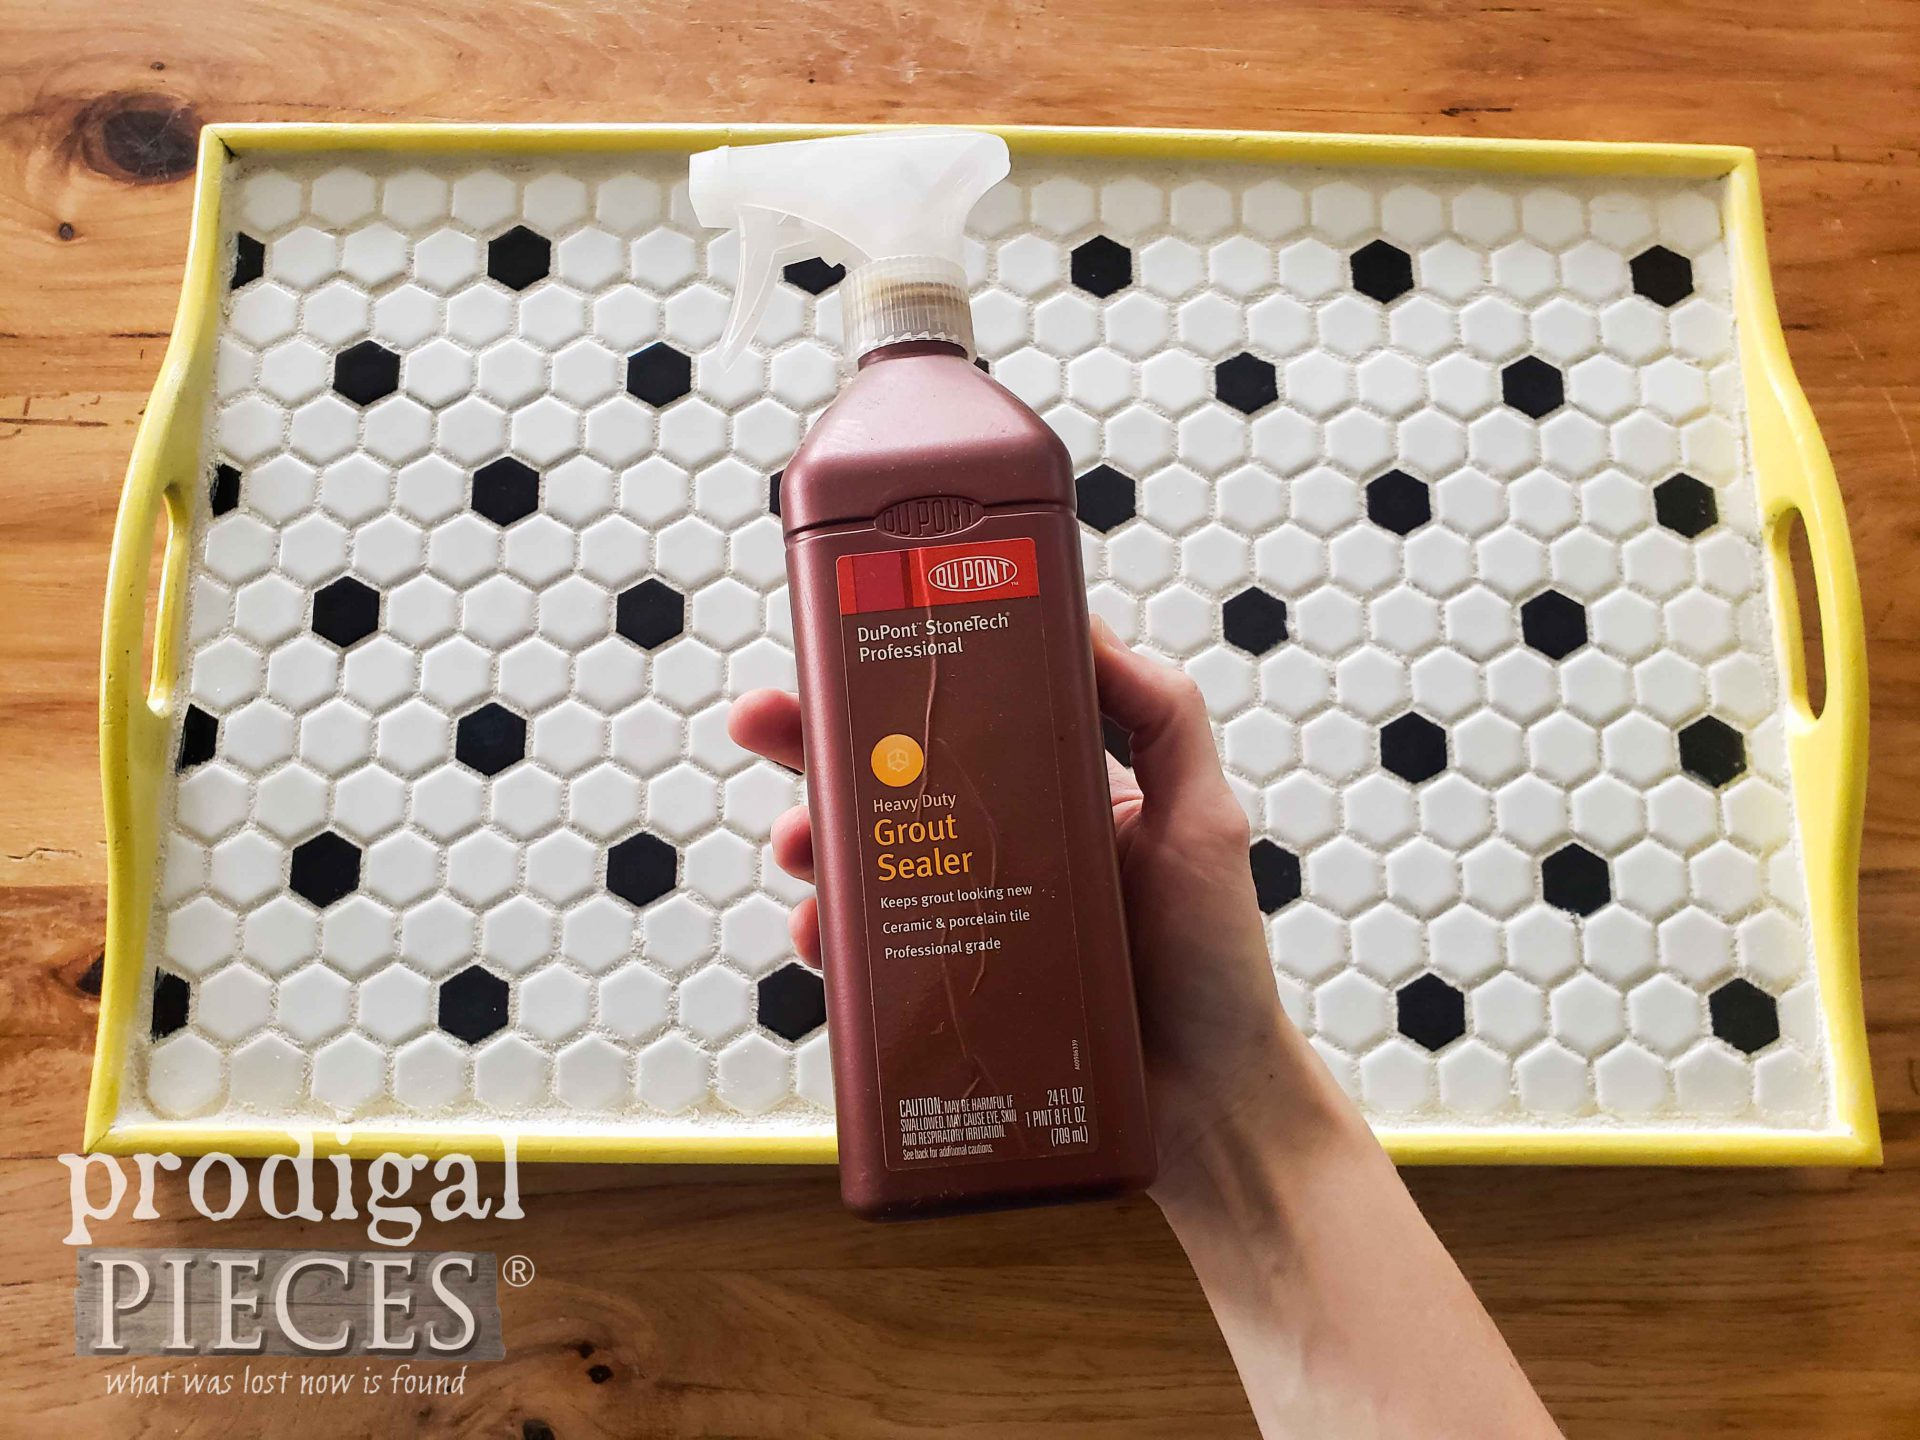 Applying Grout Sealer to DIY Tiled Tray | prodigalpieces.com #prodigalpieces #diy #vintage #home #homedecor